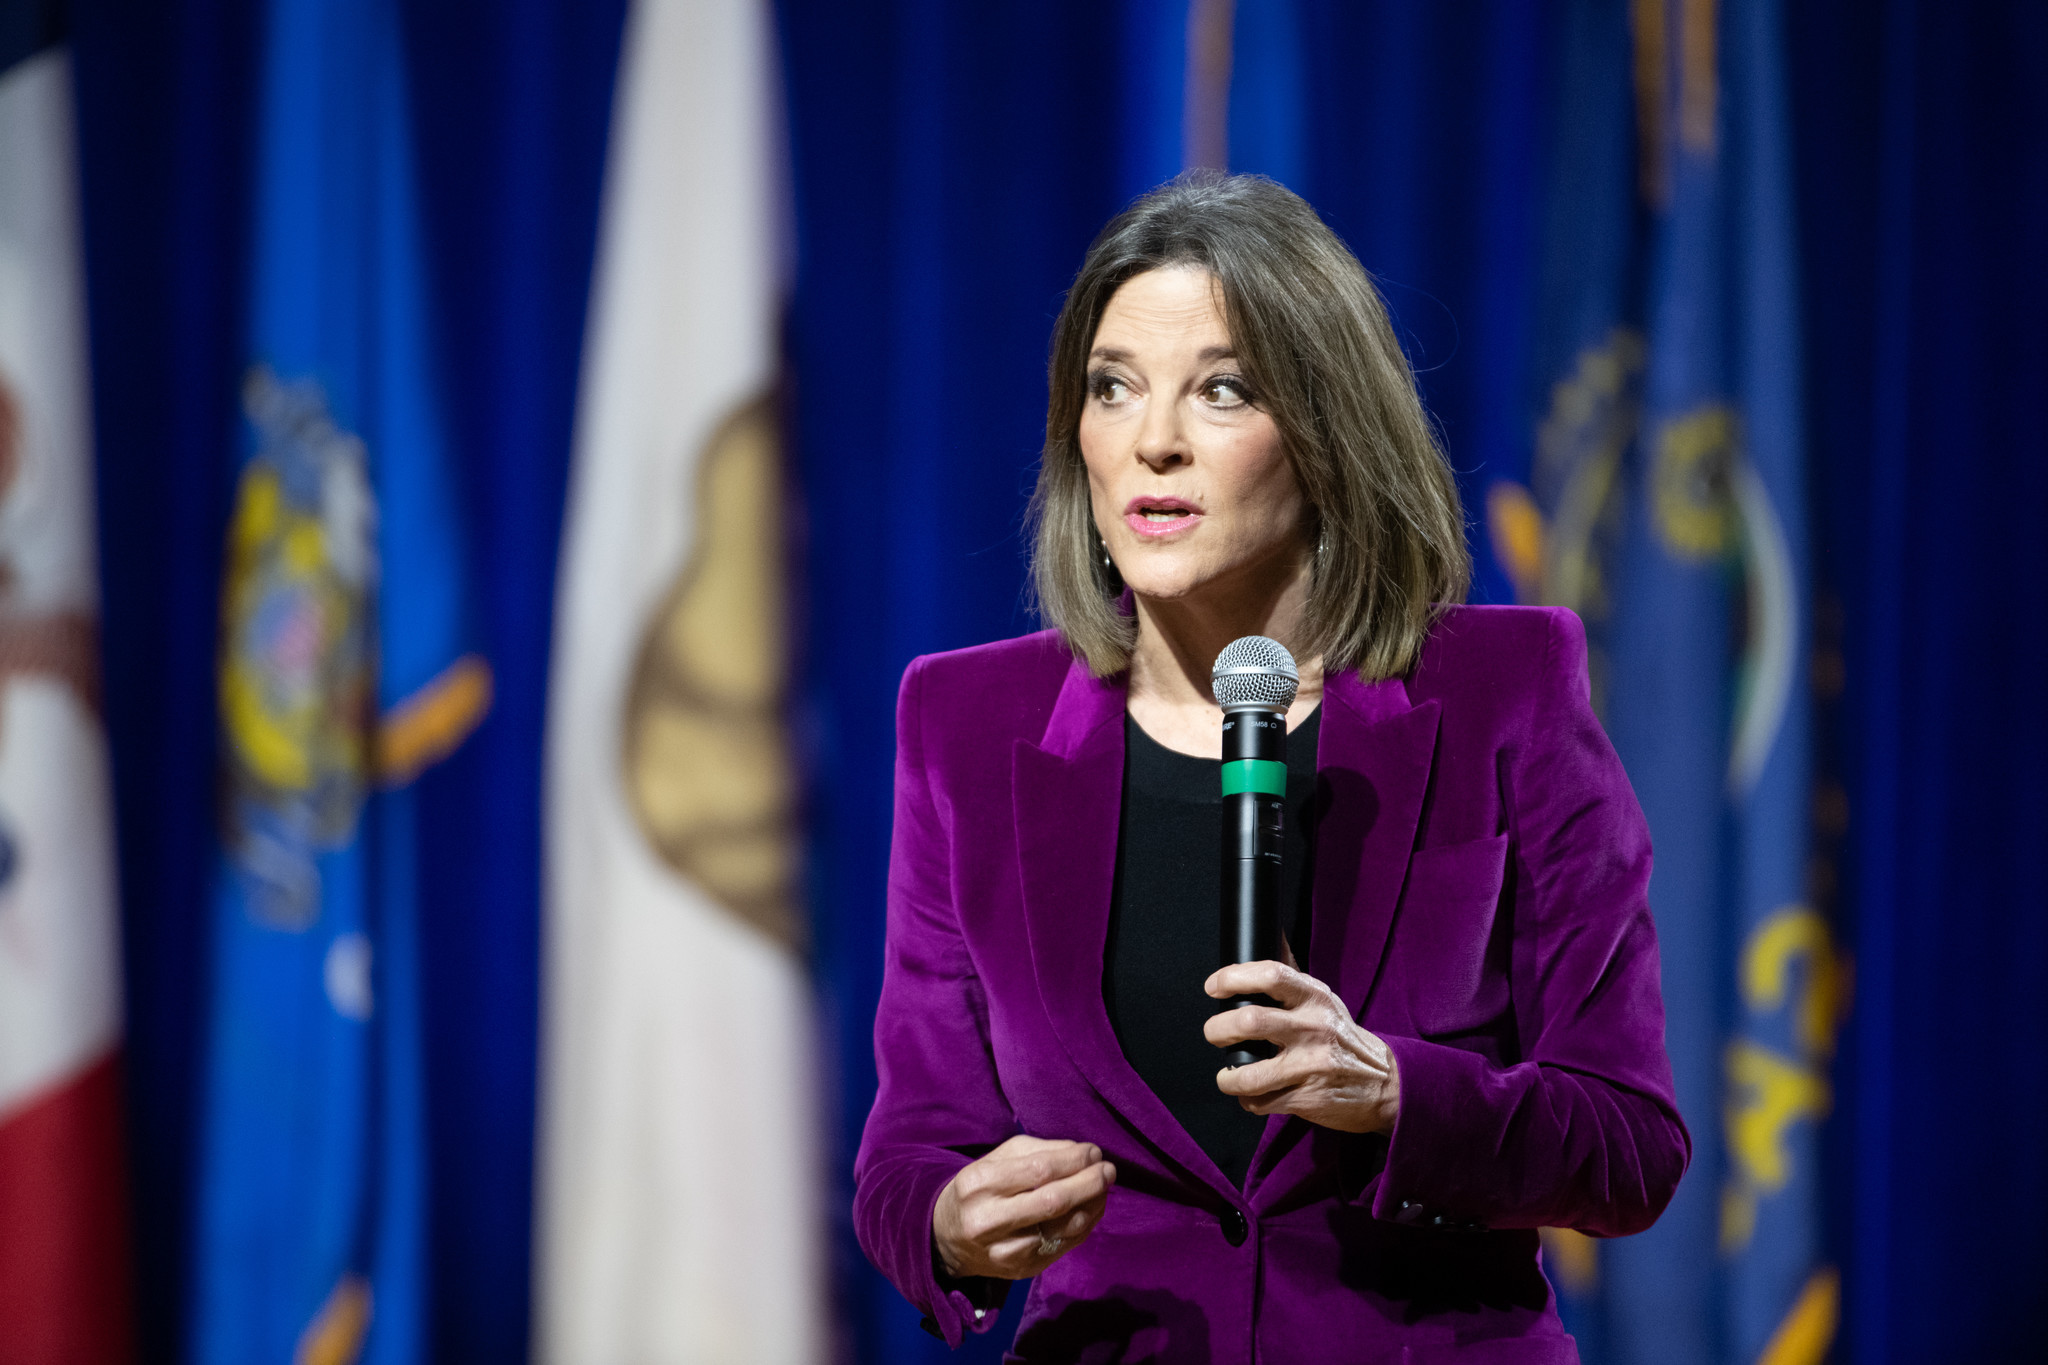 Marianne Williamson appears to be ending her unconventional presidential campaign